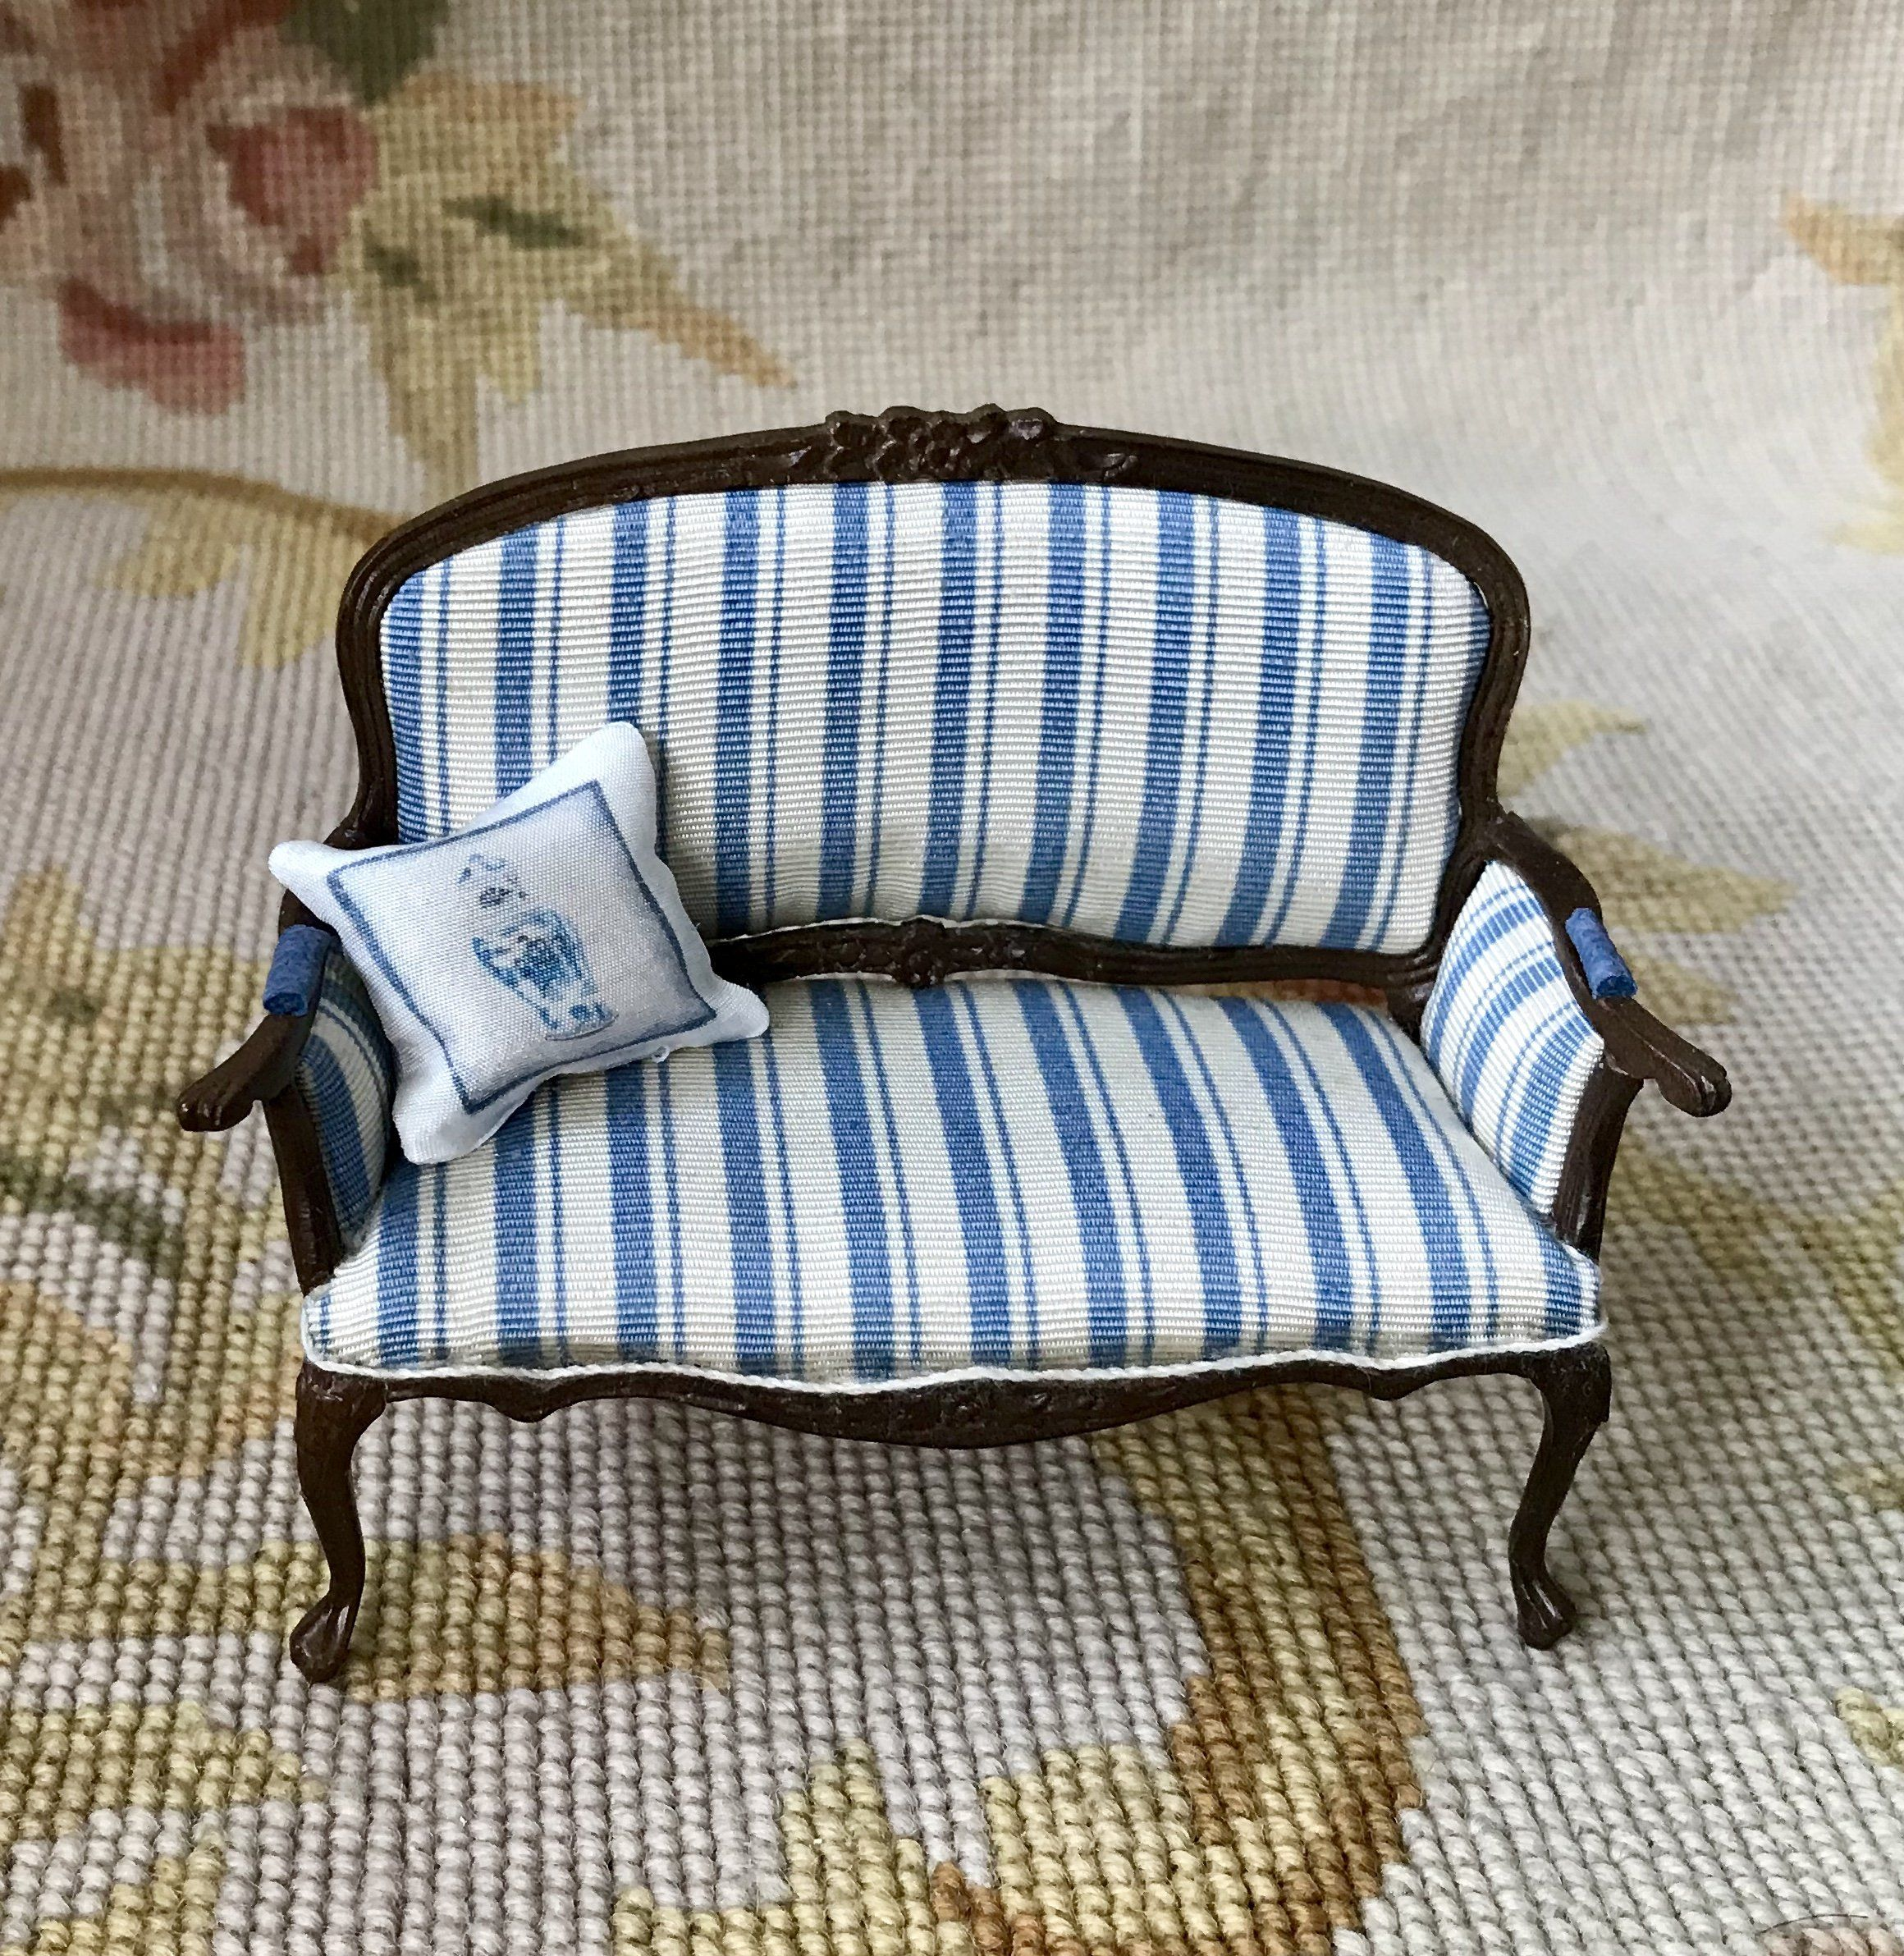 Bespaq Sofa Seat Couch Chaise Lounge Settee